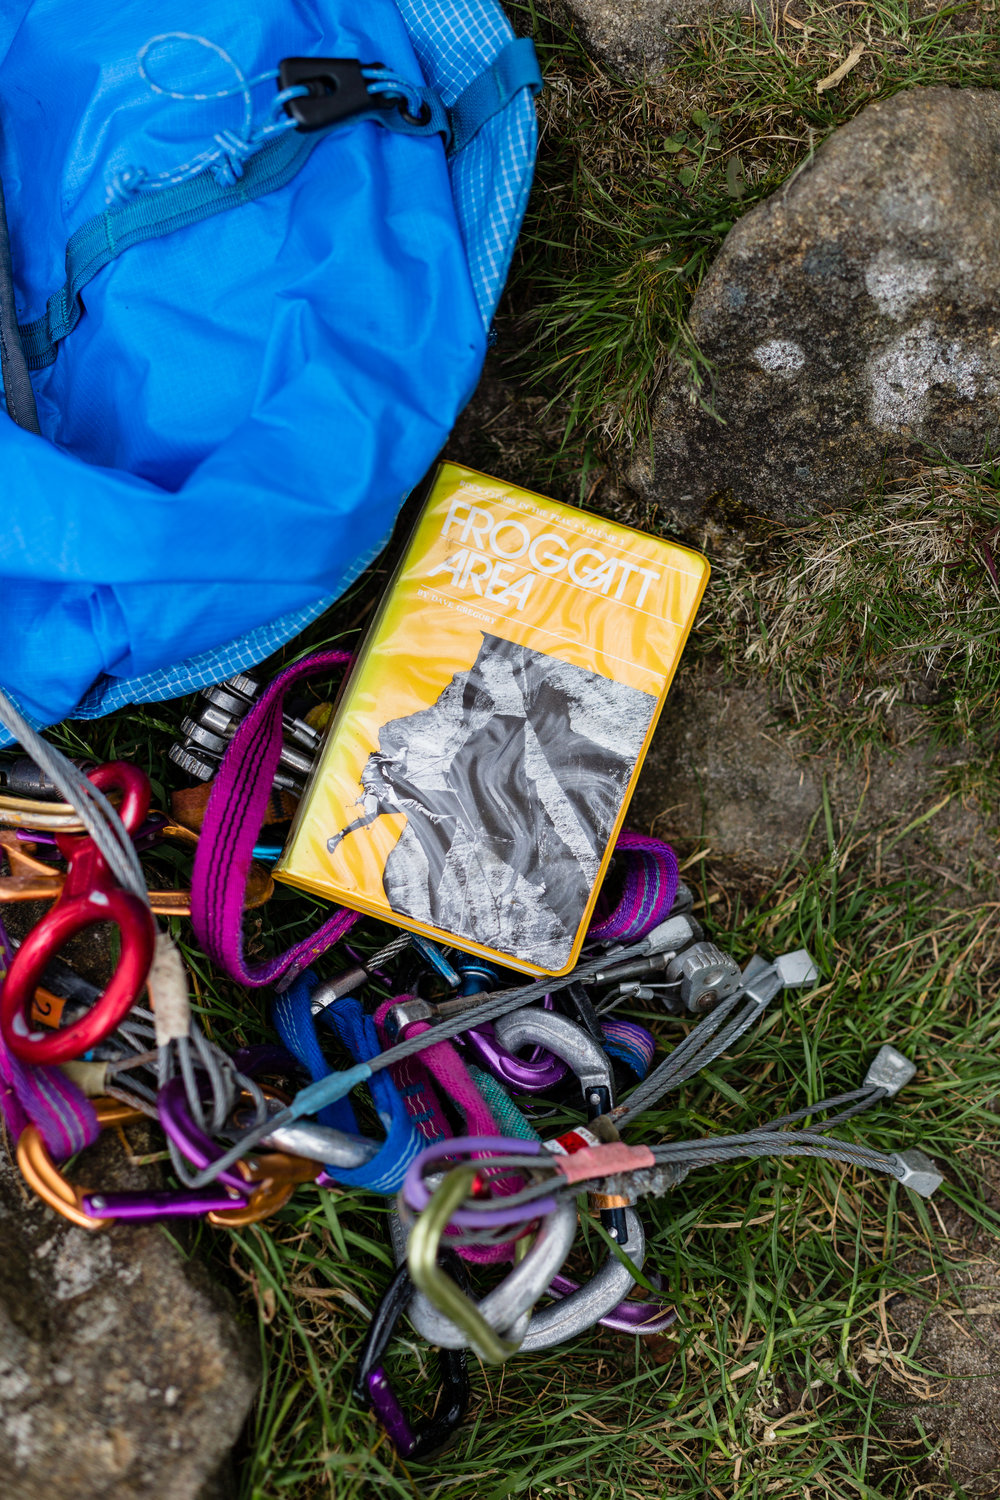 old-school gear and guidebooks - I loved this!